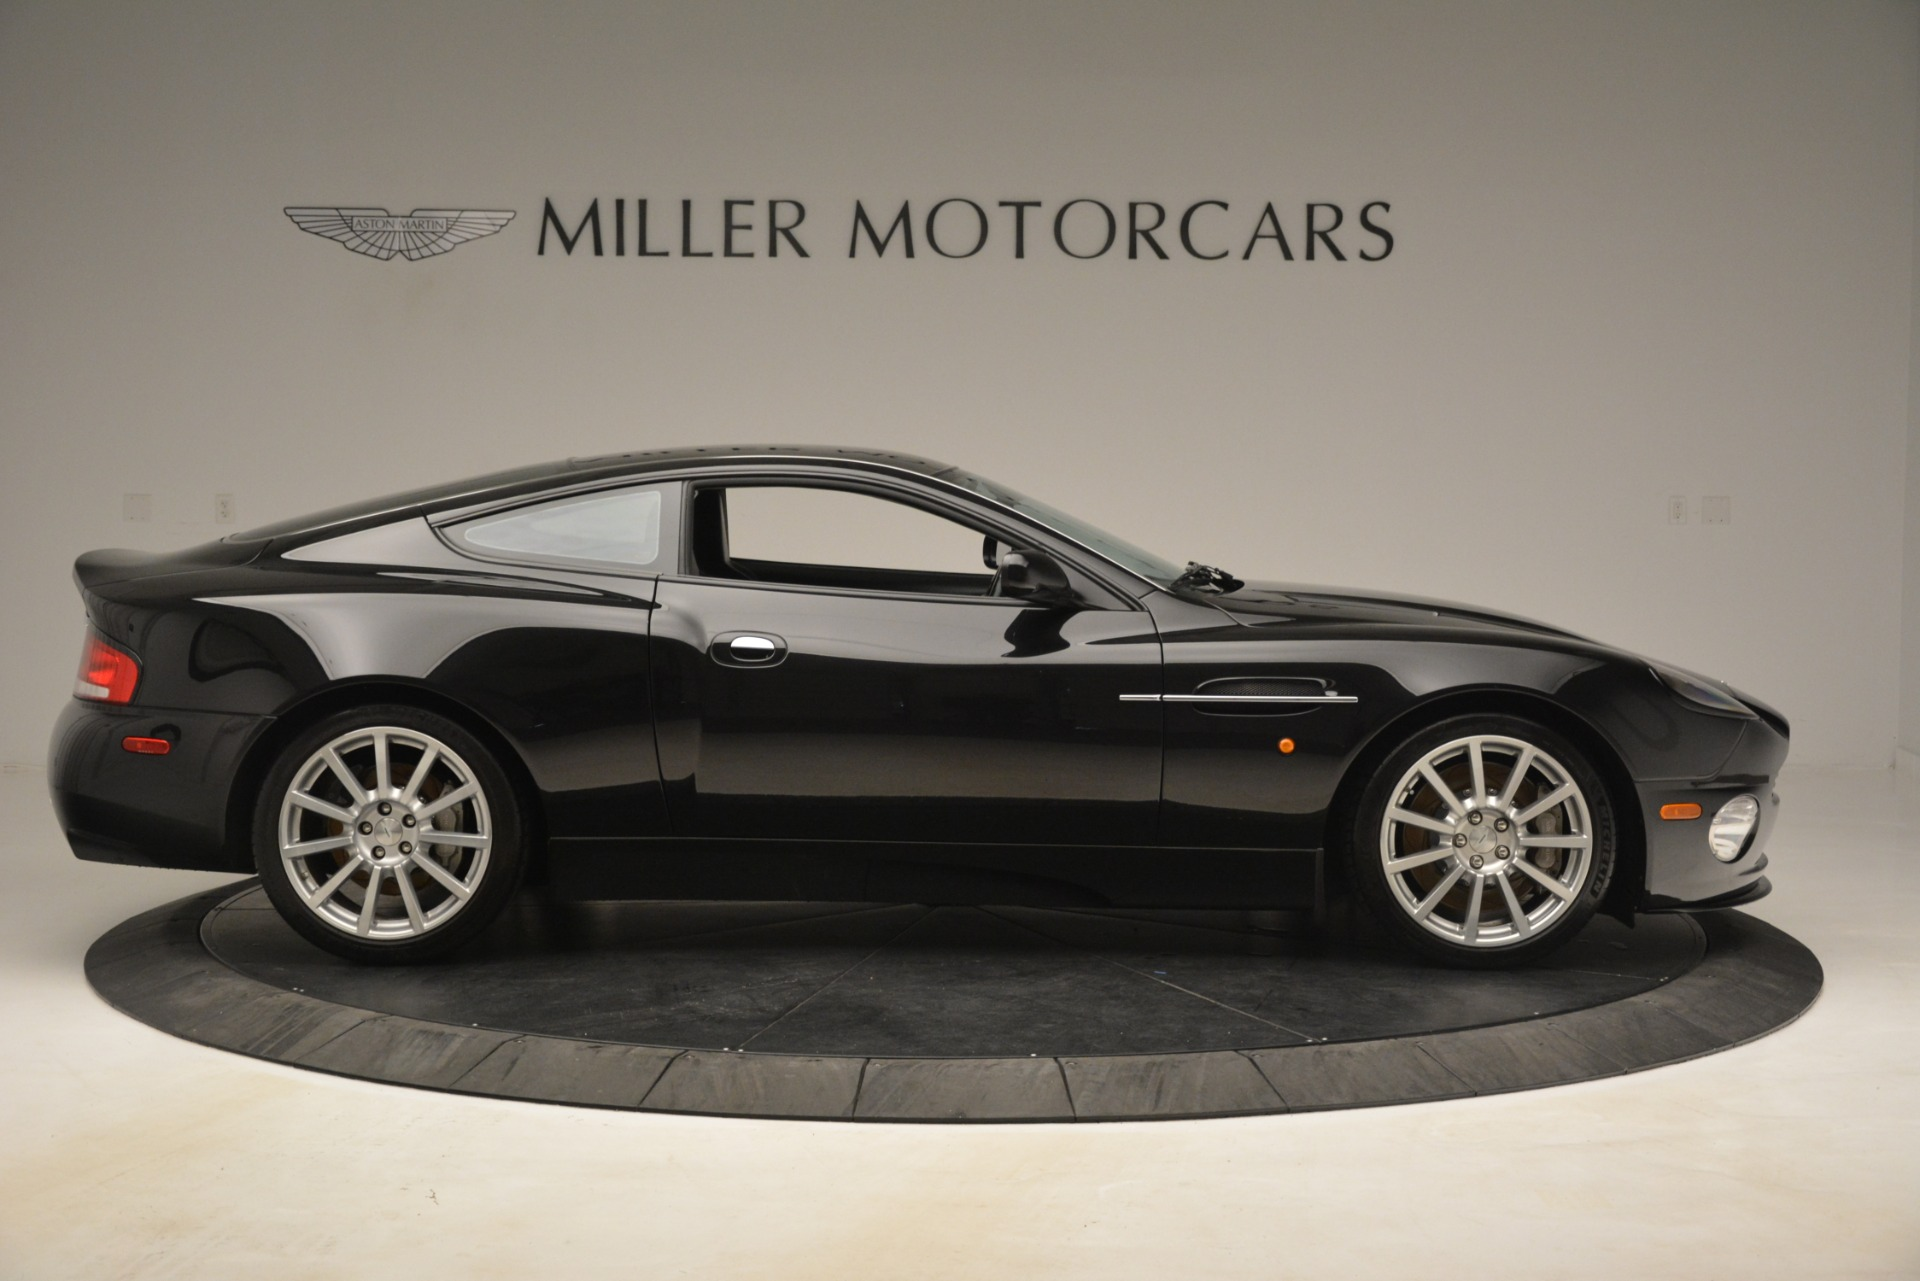 Used 2005 Aston Martin V12 Vanquish S Coupe For Sale In Westport, CT 3218_p9